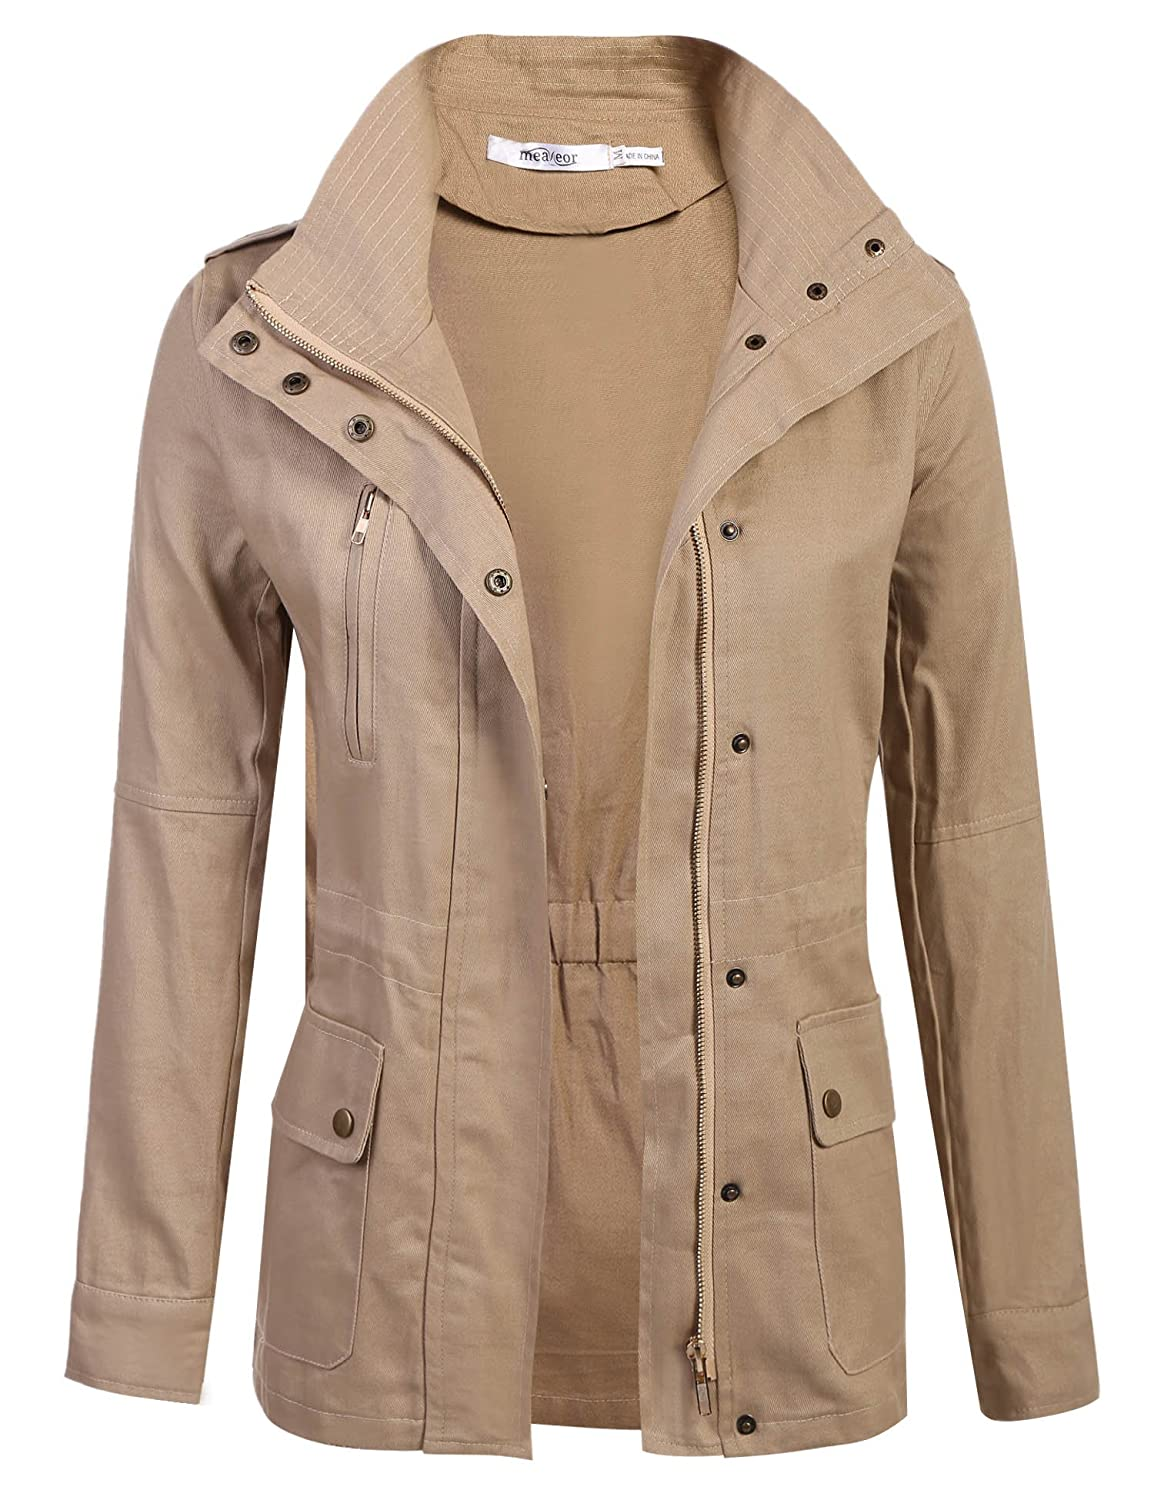 Meaneor Womans Classic Military Safari Utility Anorak Street Fashion Jacket MAH005560